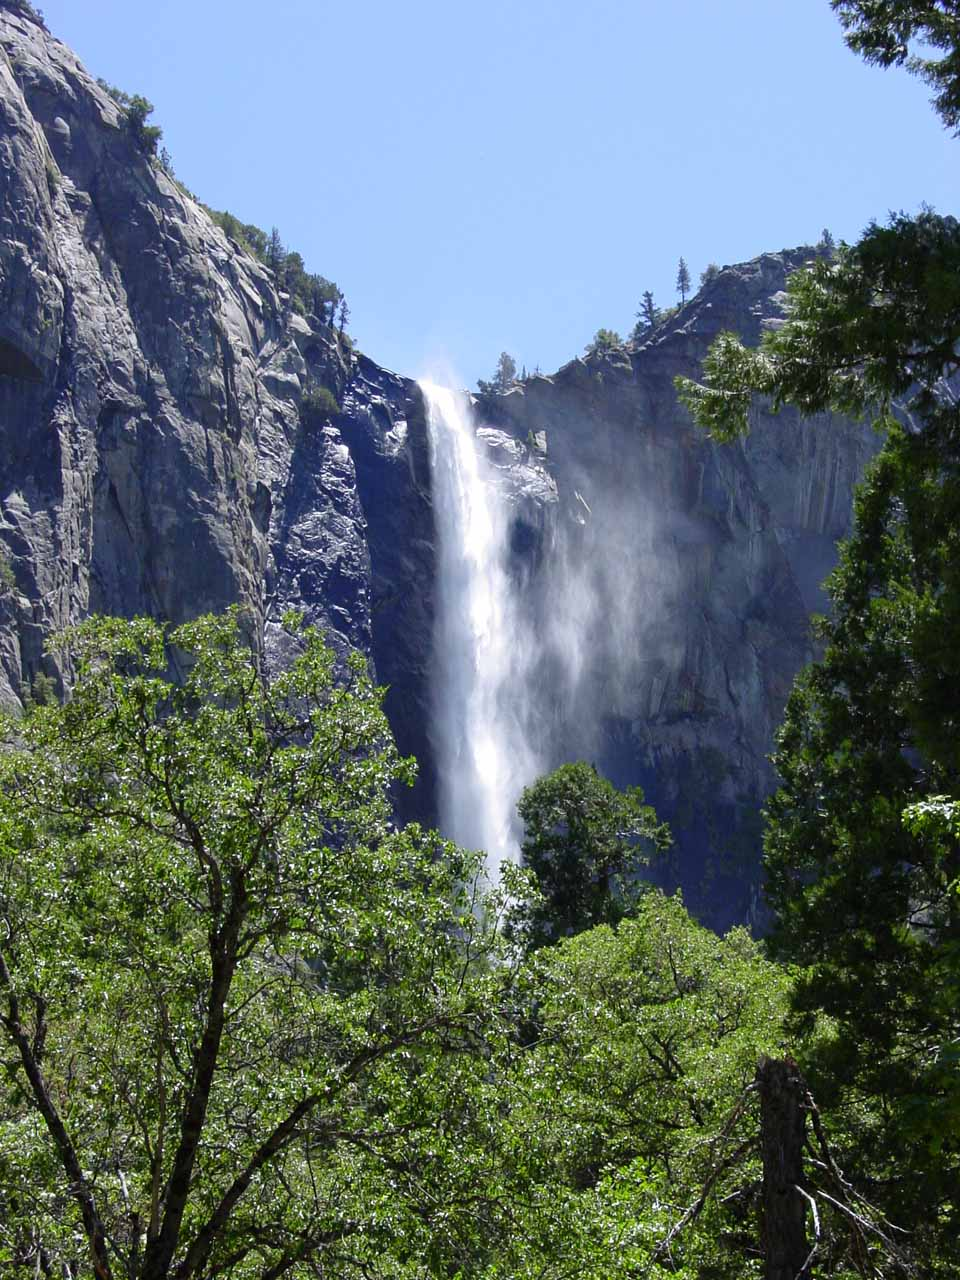 Bridalveil Fall from the Southside Drive in 2002